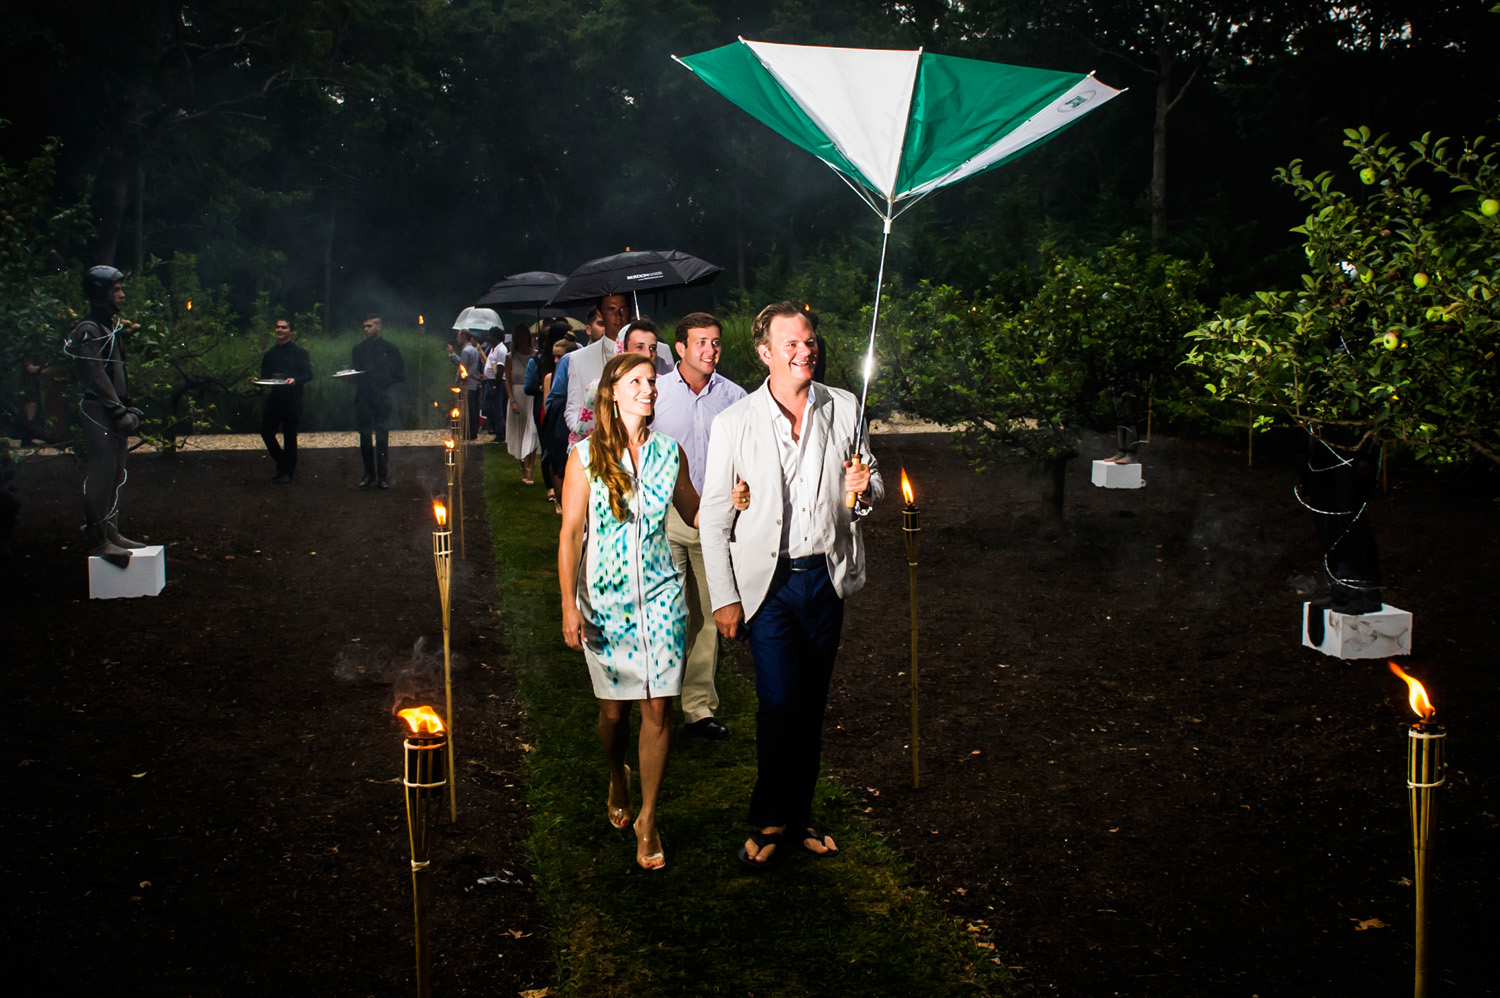 Watermill 2016 - Guests enter in the rain